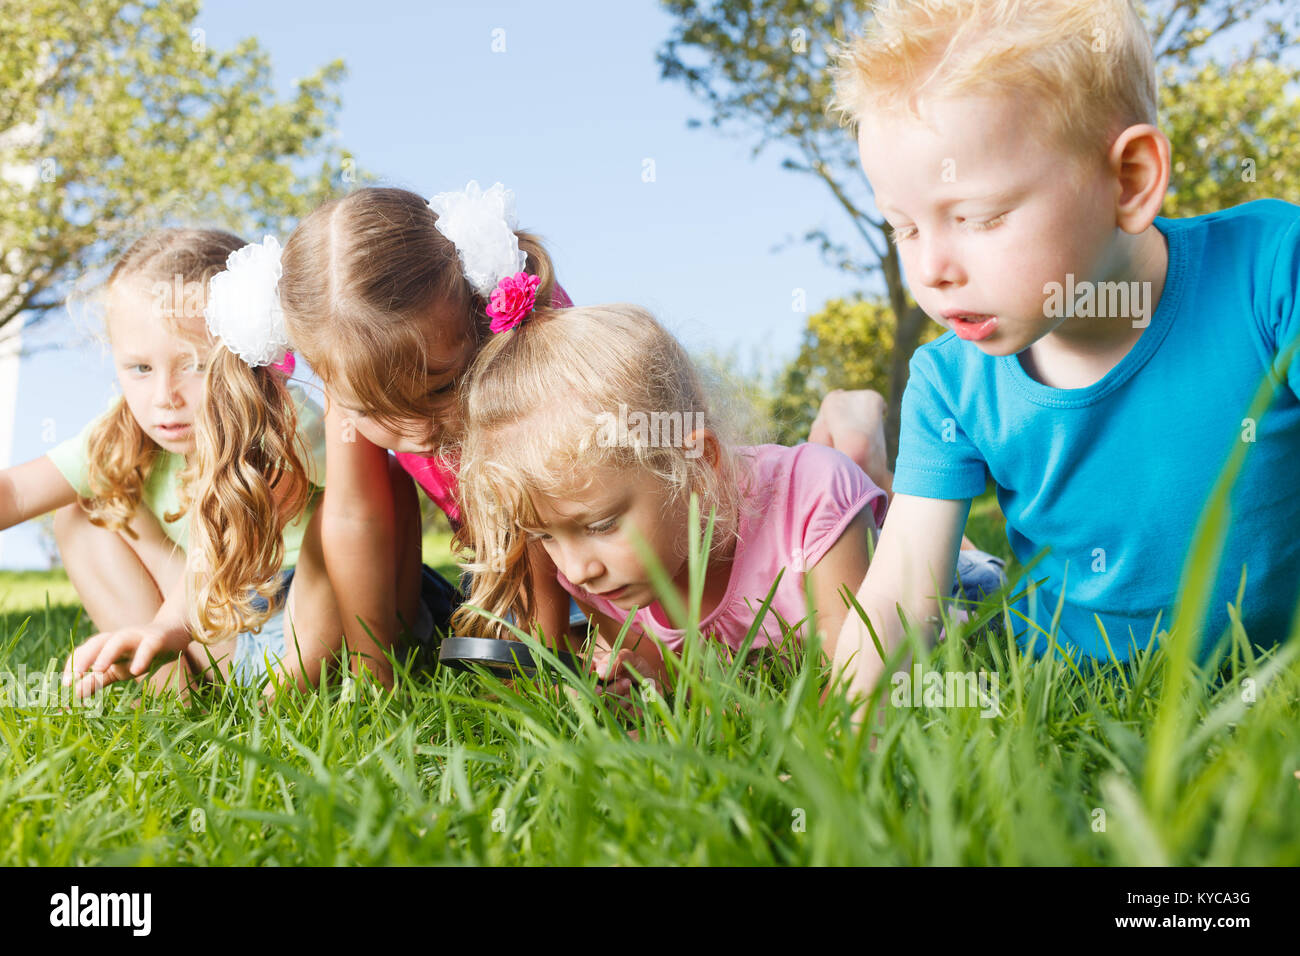 Preschoolers exploring the nature with magnifying glass - Stock Image